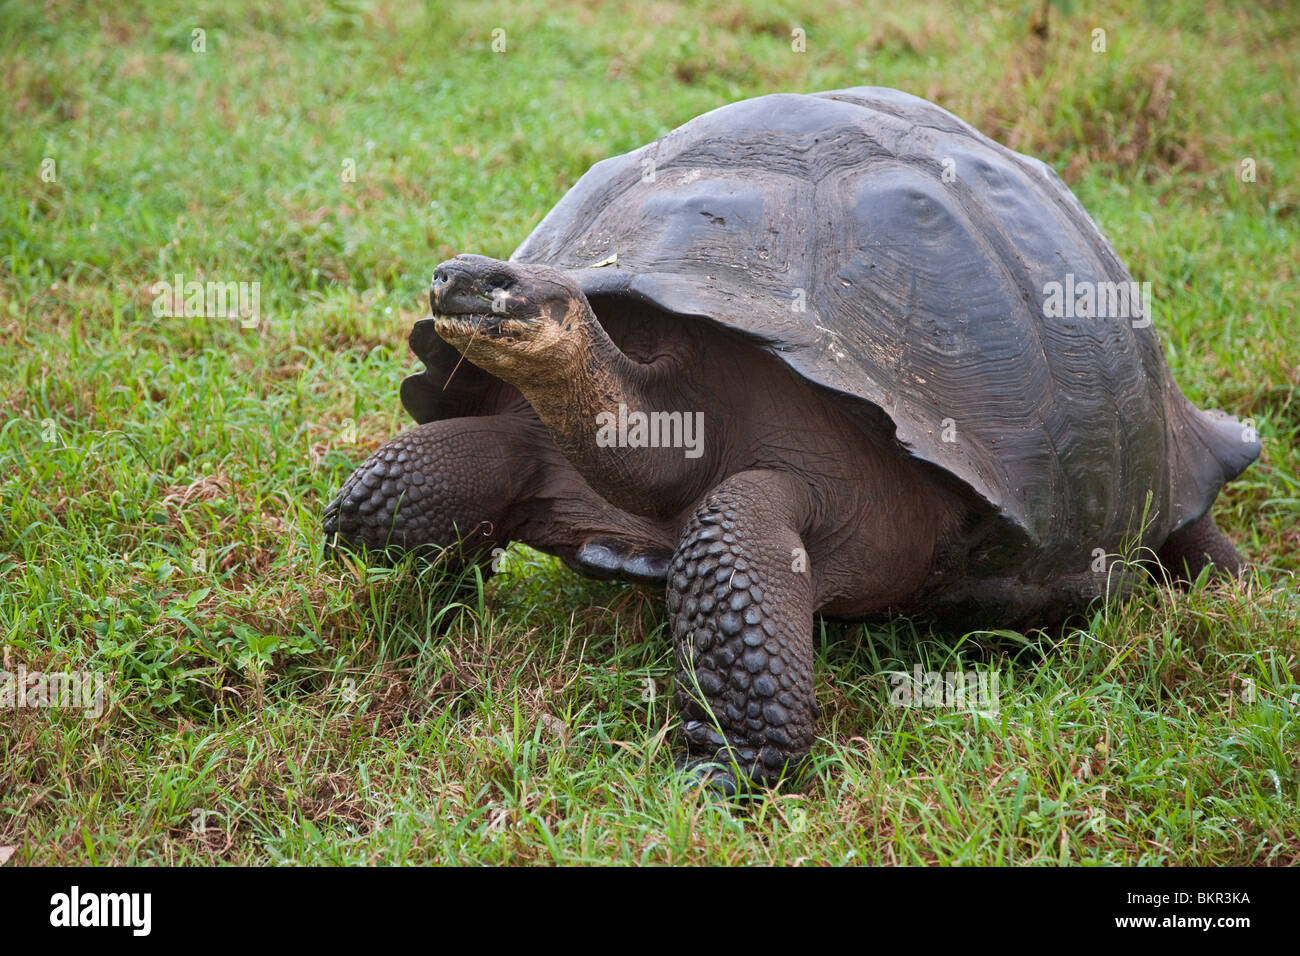 Galapagos Islands, A giant tortoise after which the Galapagos islands were named. - Stock Image